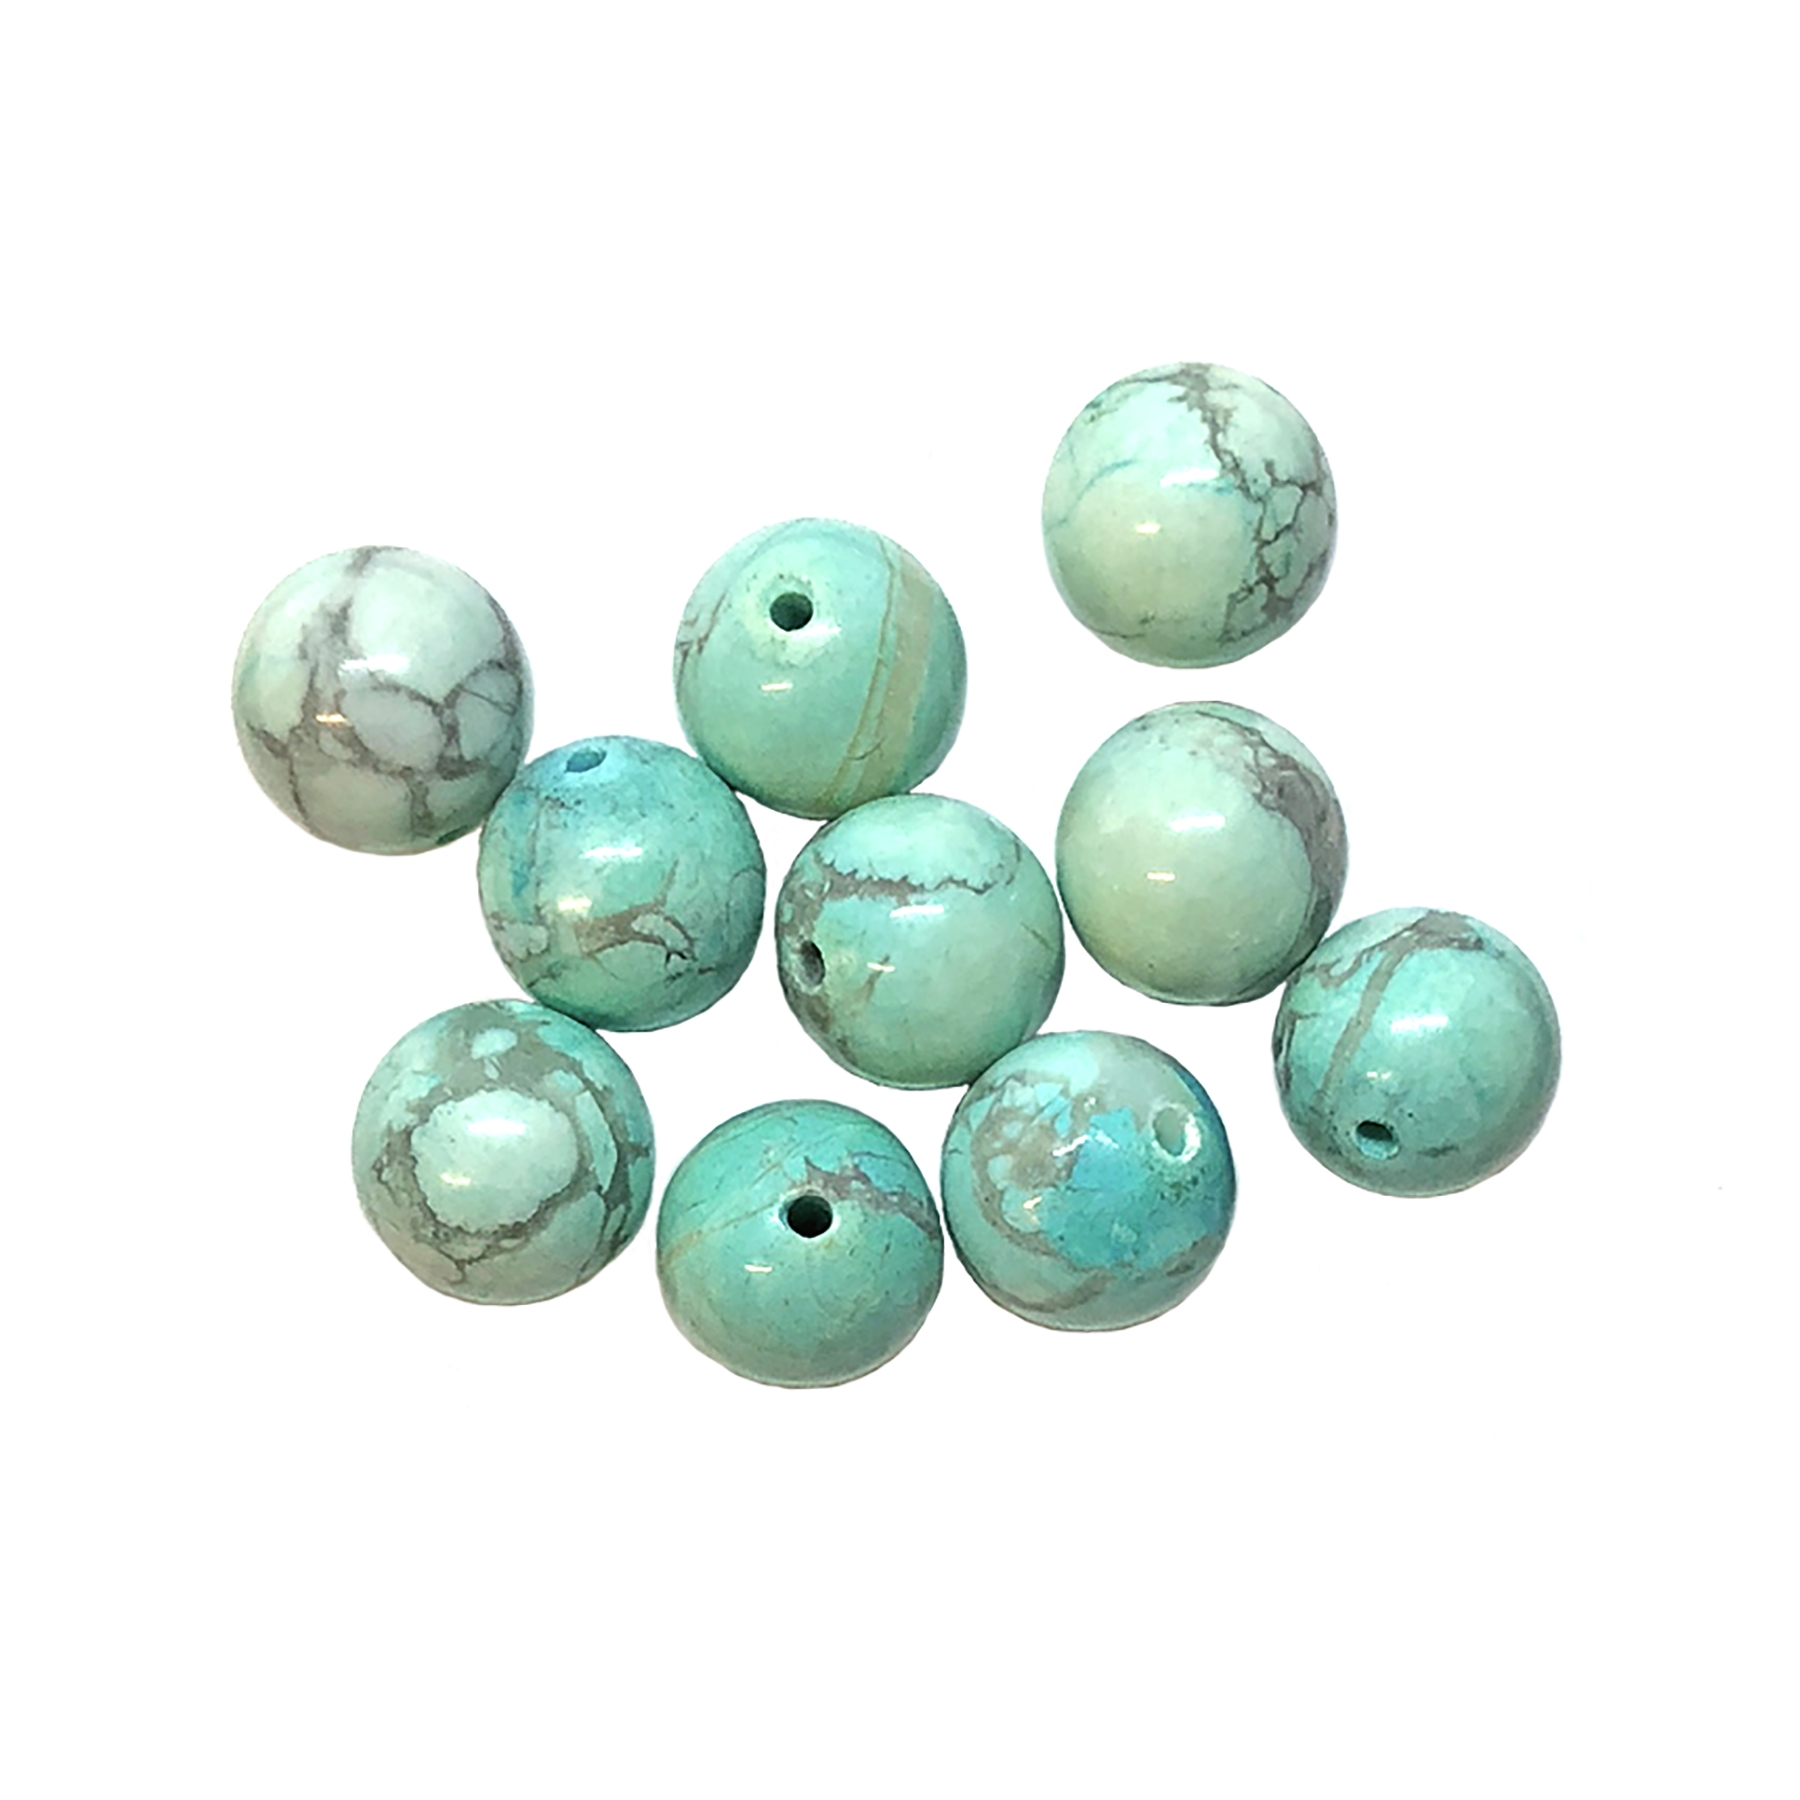 semi precious beads, turquoise, Chinese turquoise focal beads, 8mm bead, bead stone, natural bead, dyed howlite, turquoise blue, black matrix stone, semi precious beads, 18mm, beads, B'sue Boutiques, bead, jewelry making, beading supplies, 09033